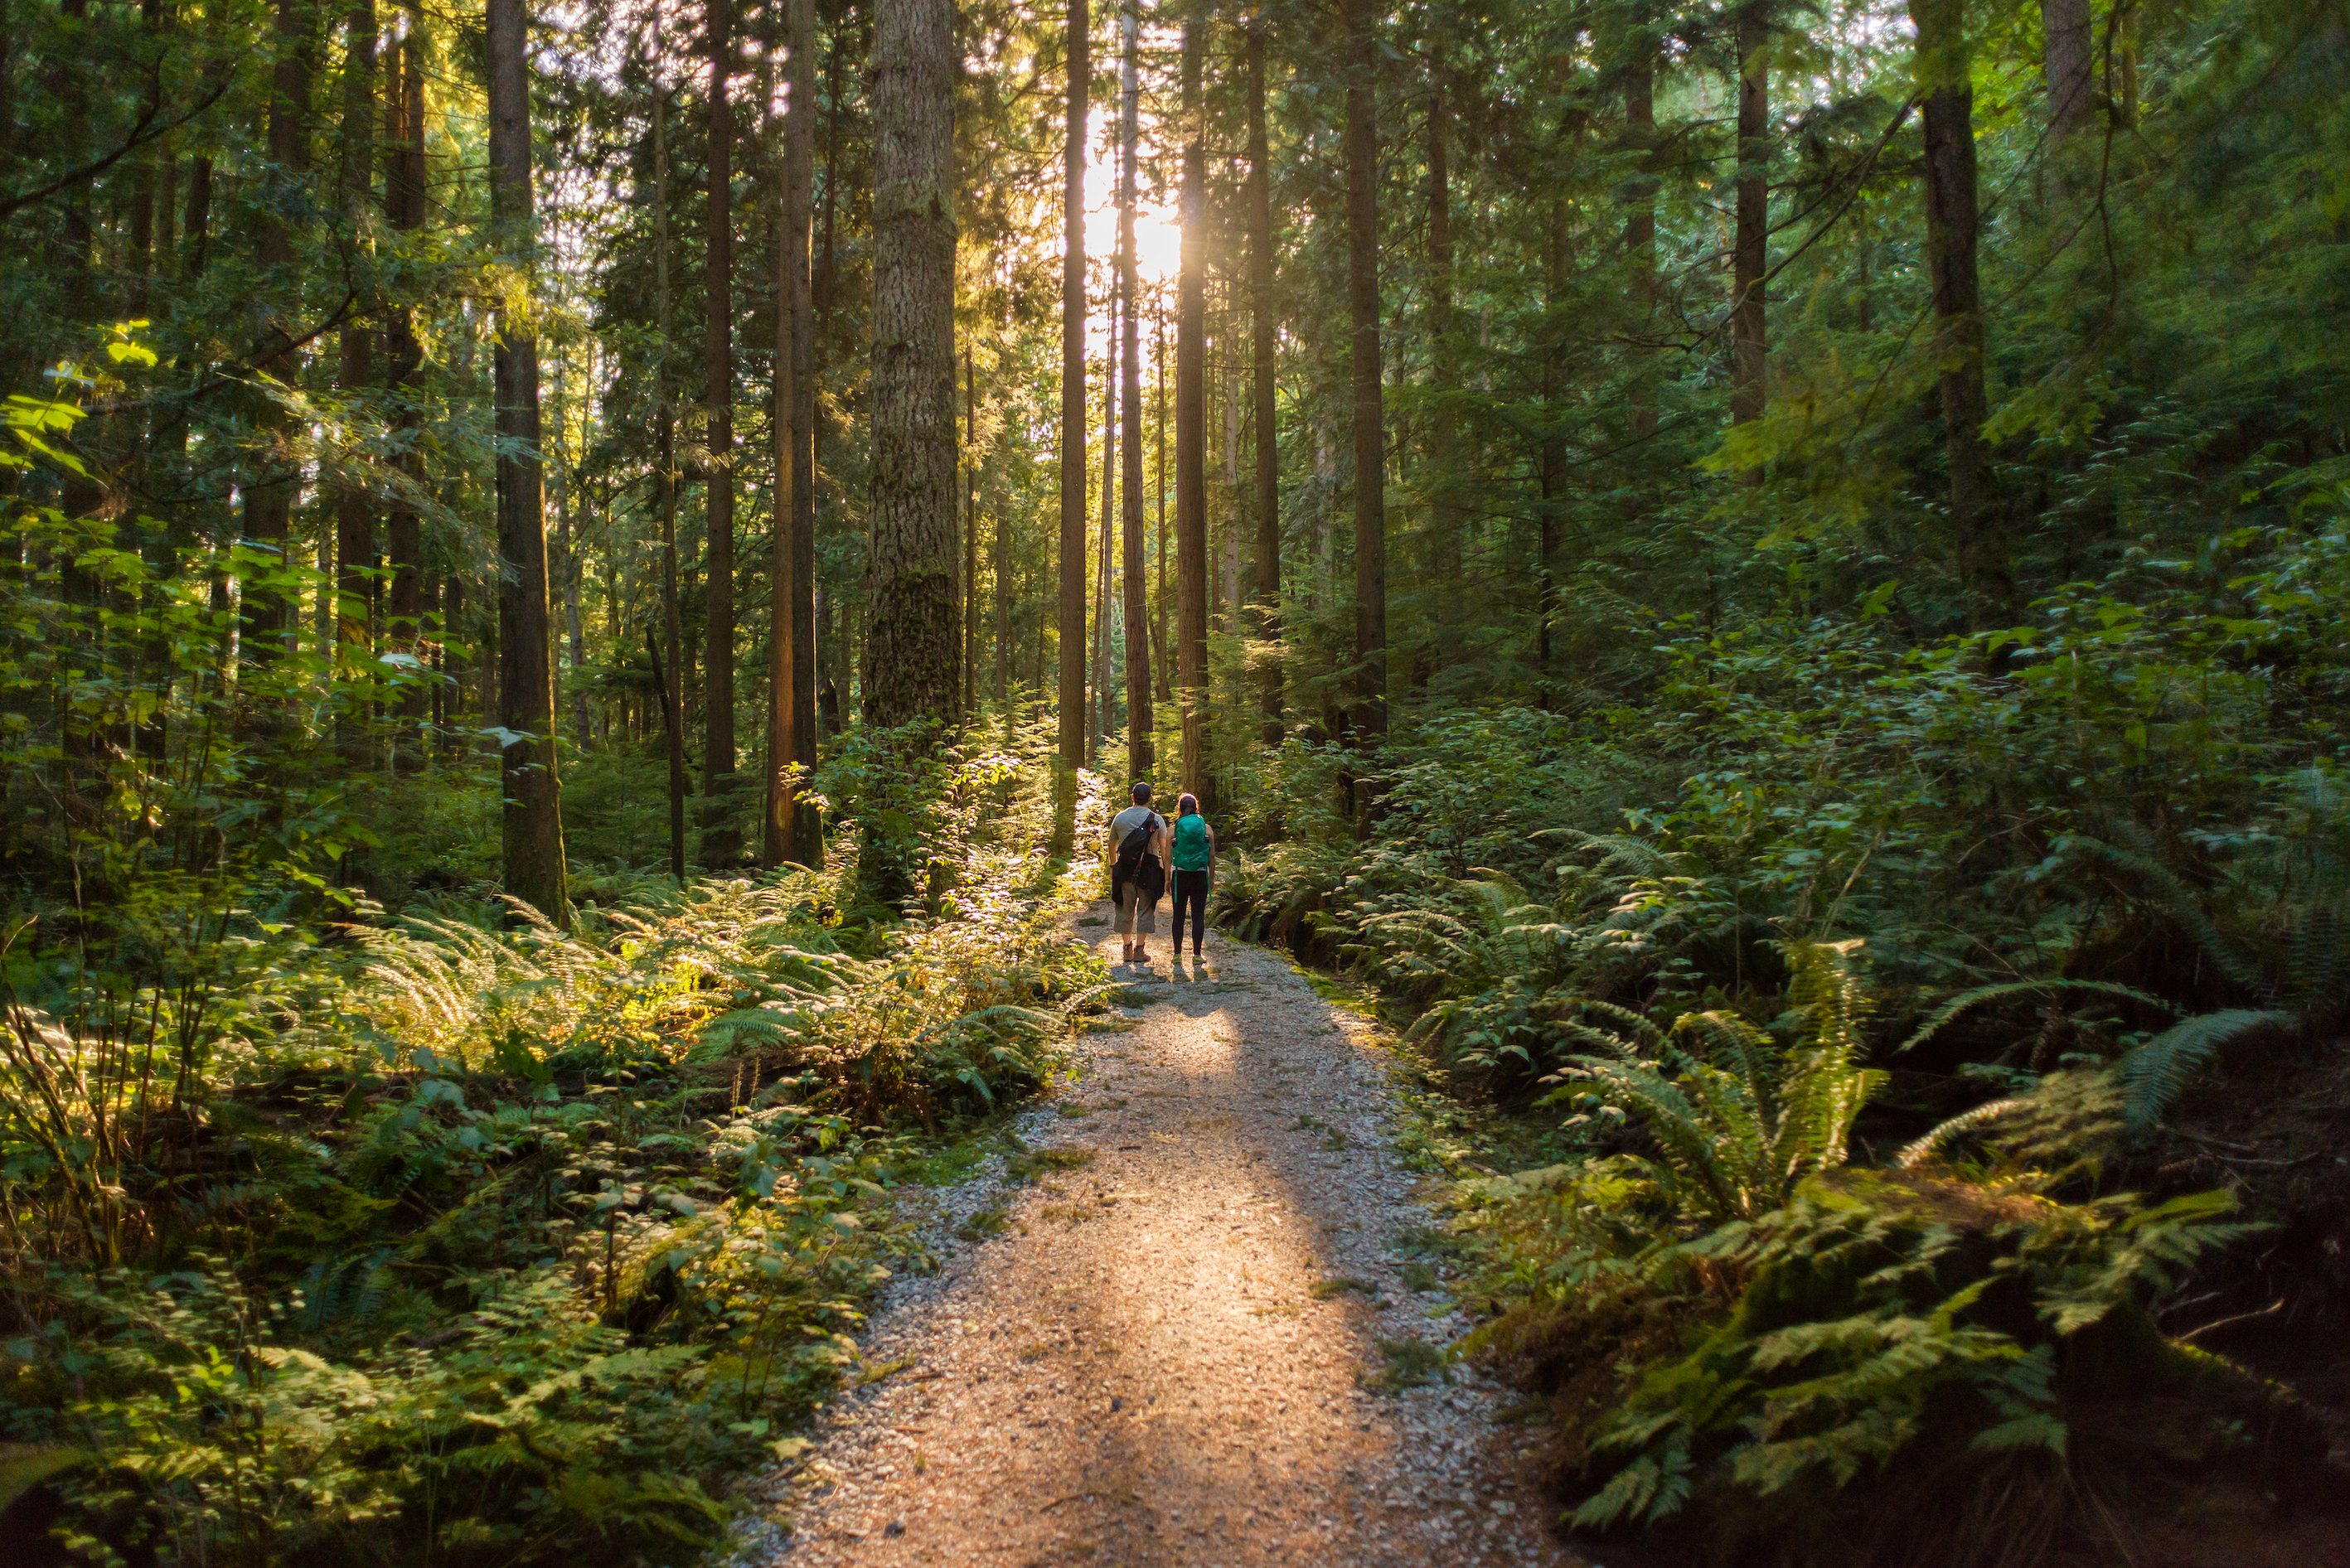 https://highpointeliving.ca/wp-content/uploads/2019/08/Nearby-forests-and-trails-iStock-892002220-copy.jpg